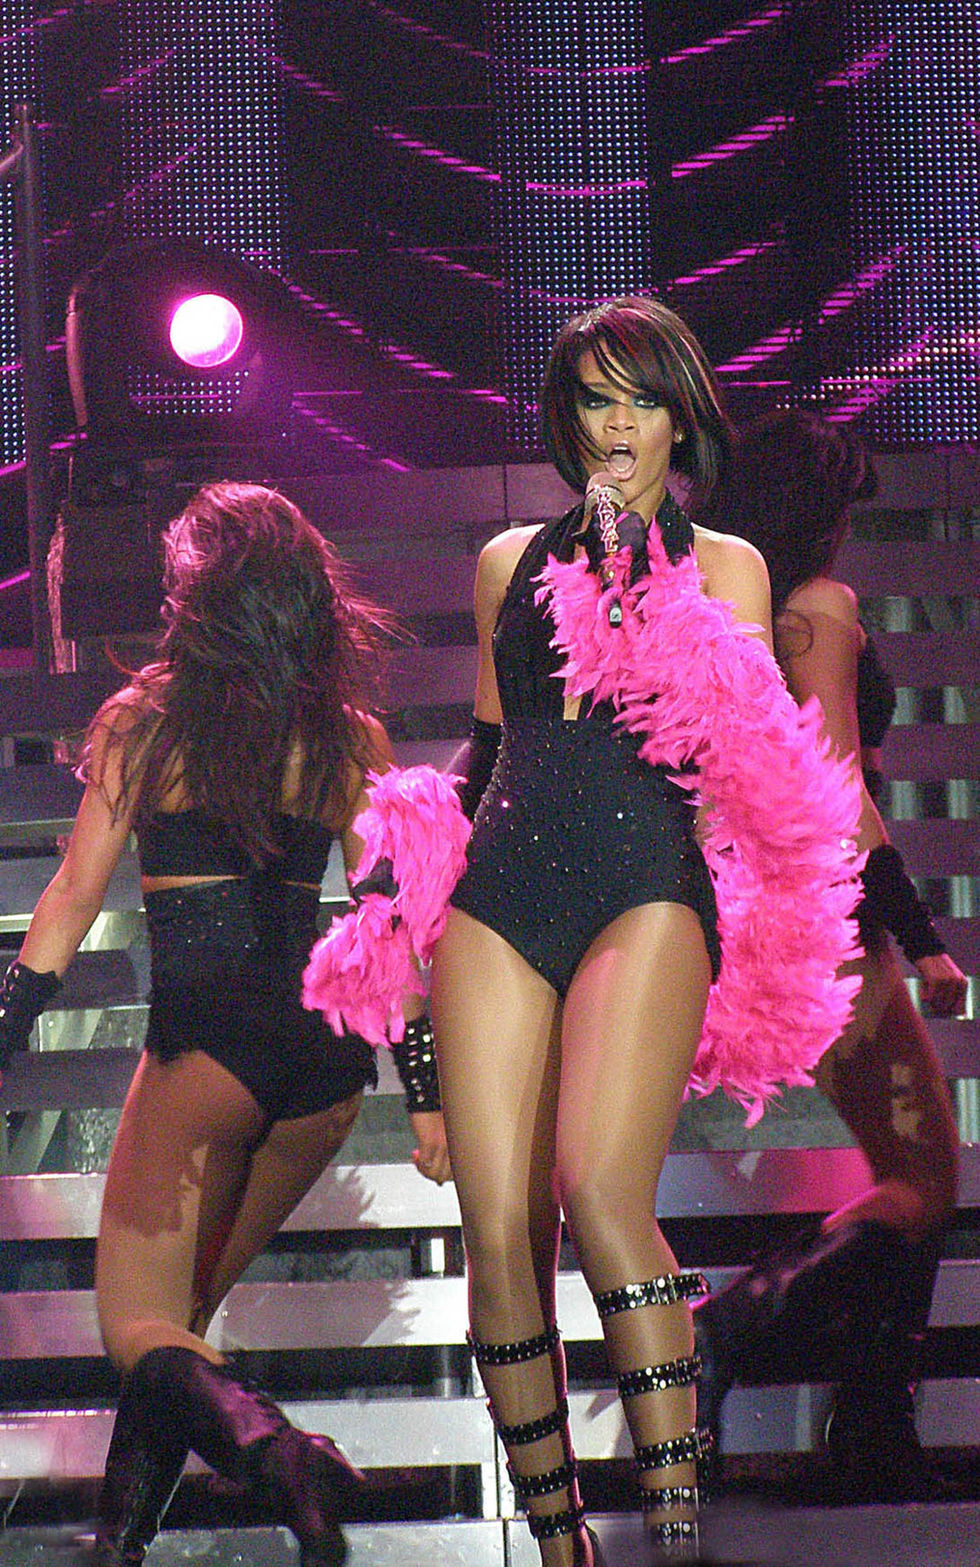 rihanna-performs-at-concert-in-sheffield-01